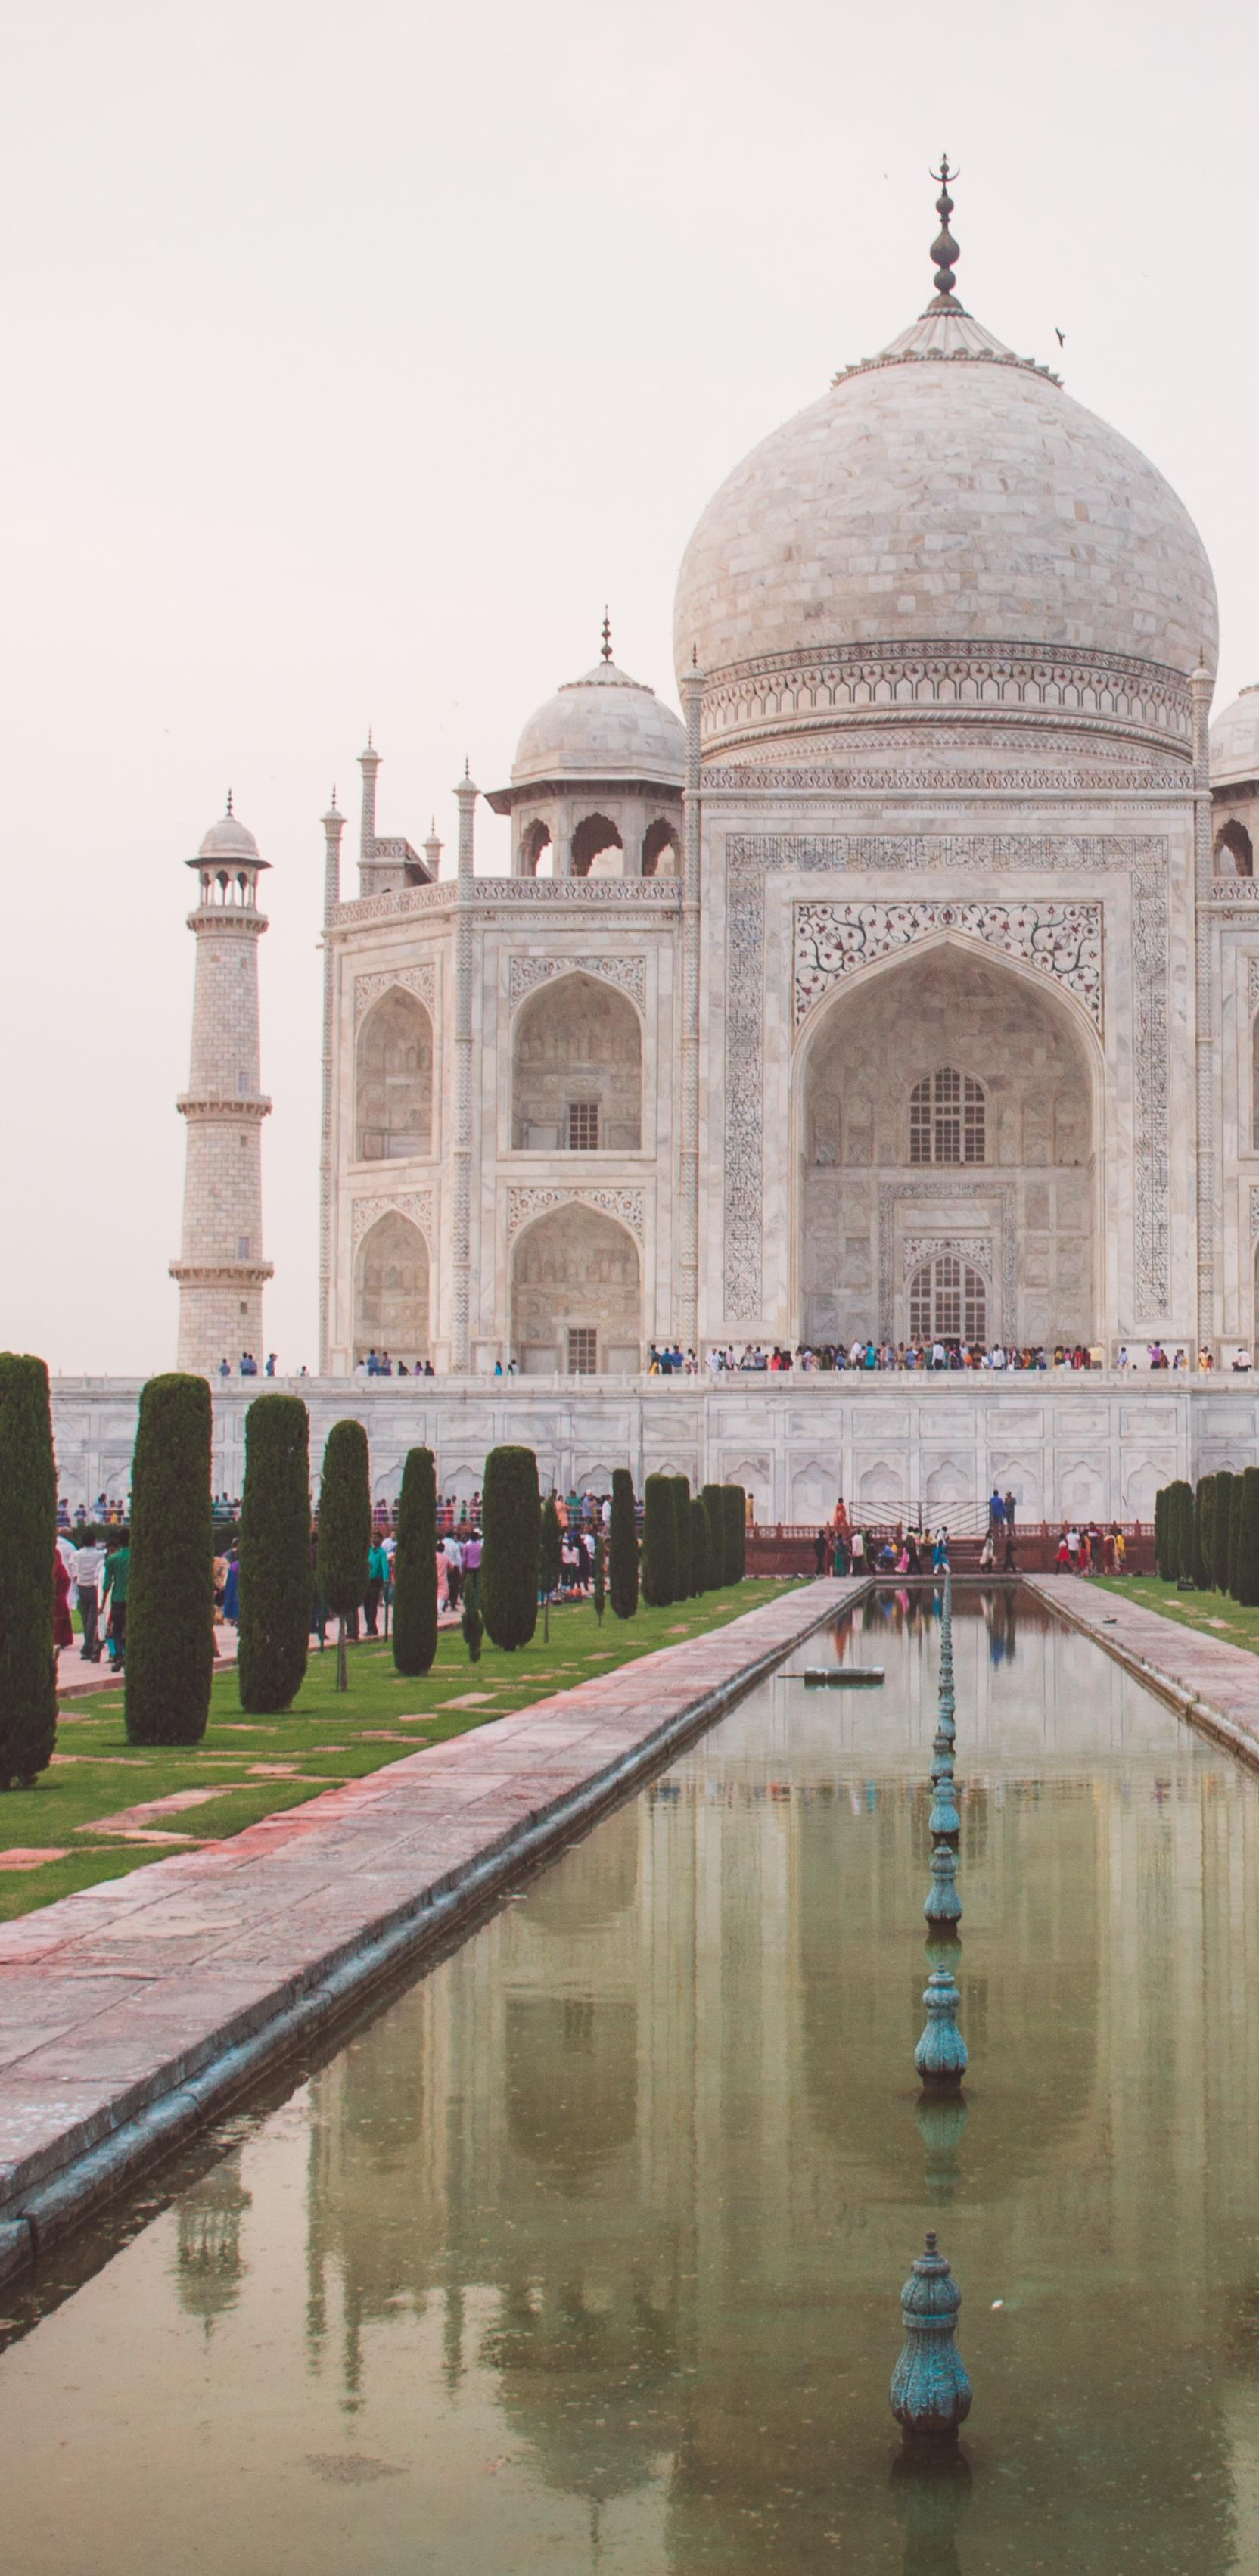 Taj Mahal cropped pixabay CCO license